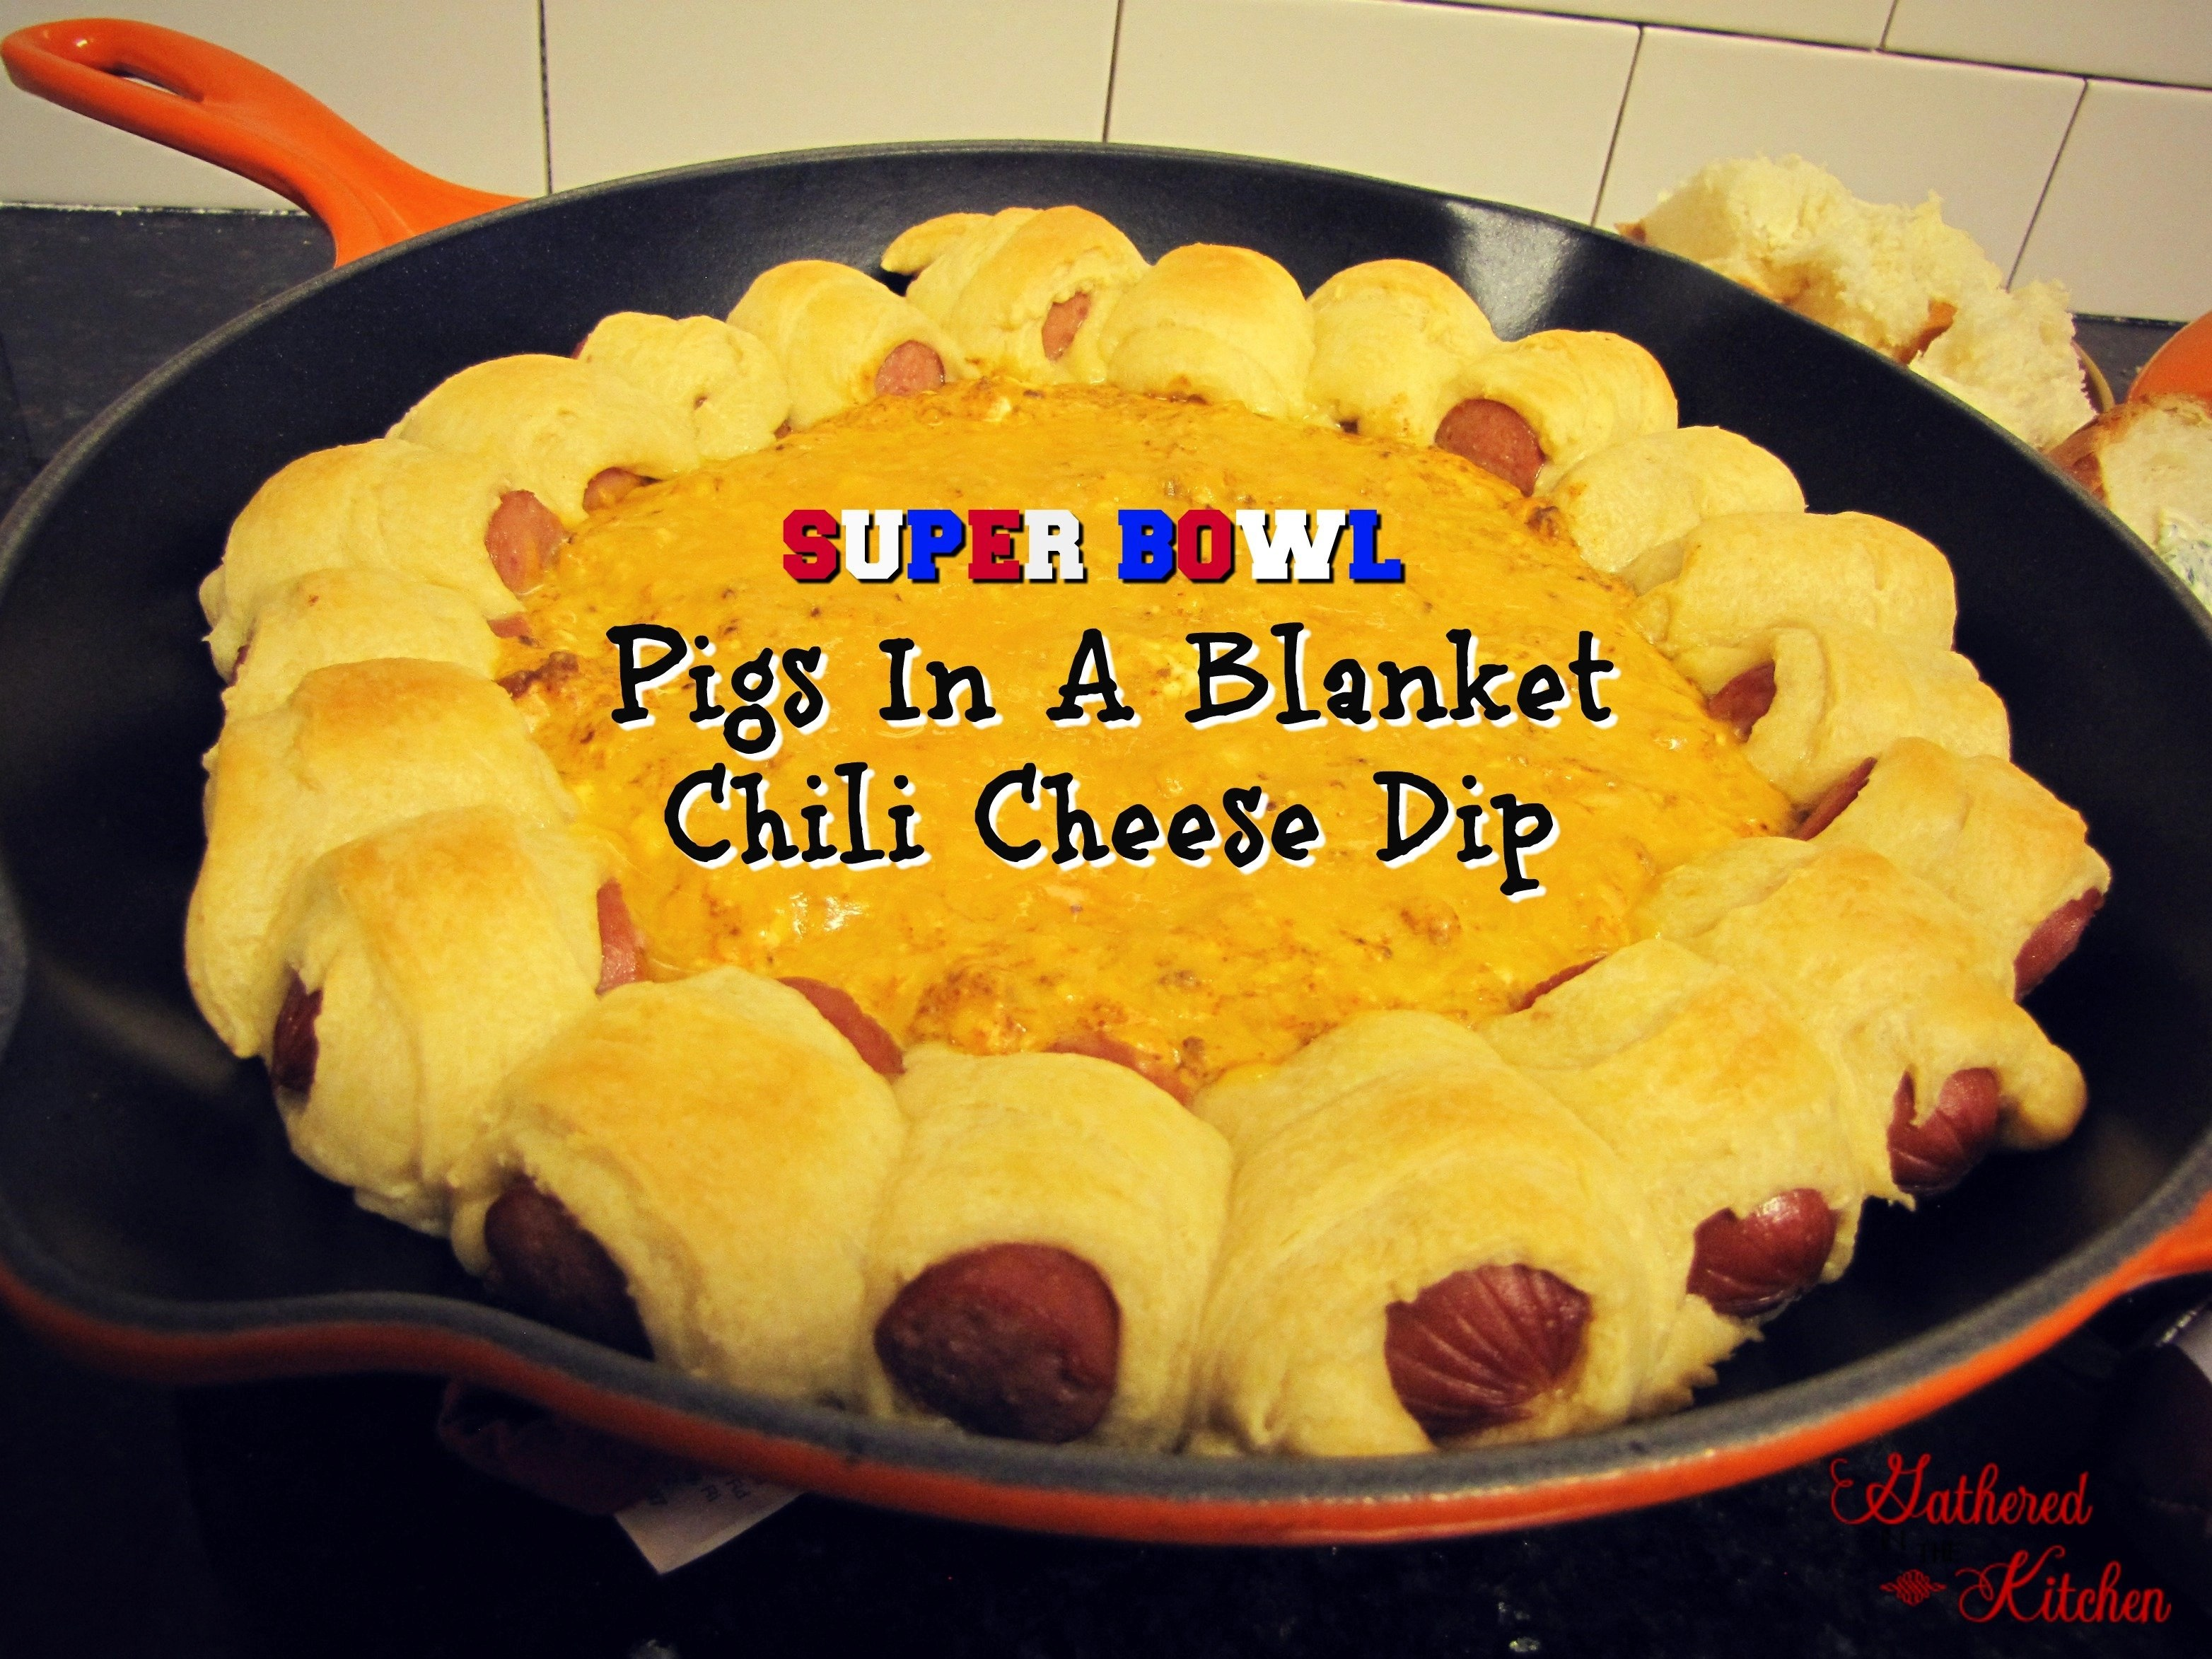 Super Bowl Pigs In A Blanket Chili Cheese Dip - Gathered In The ...